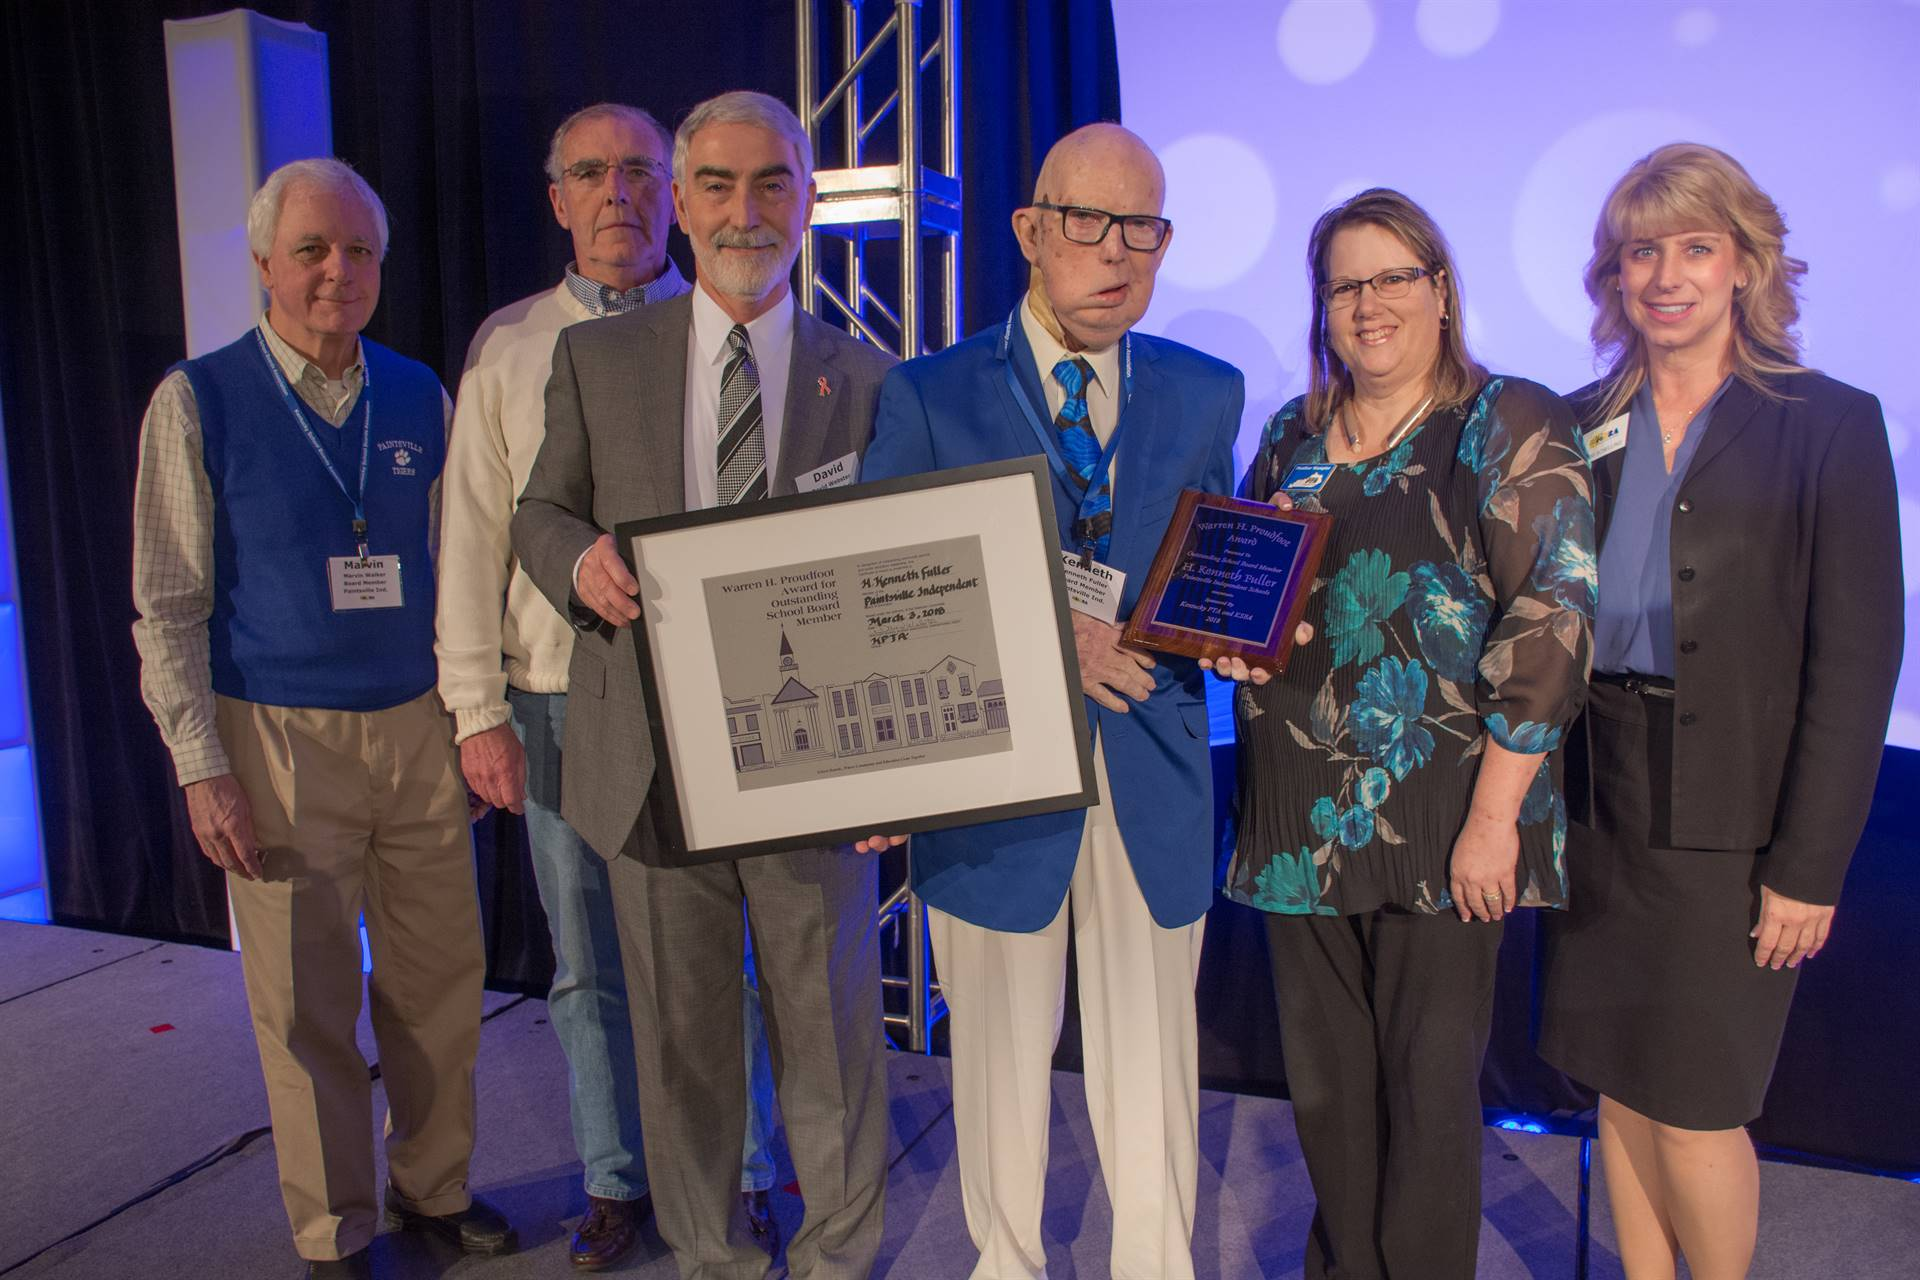 Annual Conference Proudfoot Outstanding Board Member Award Winner